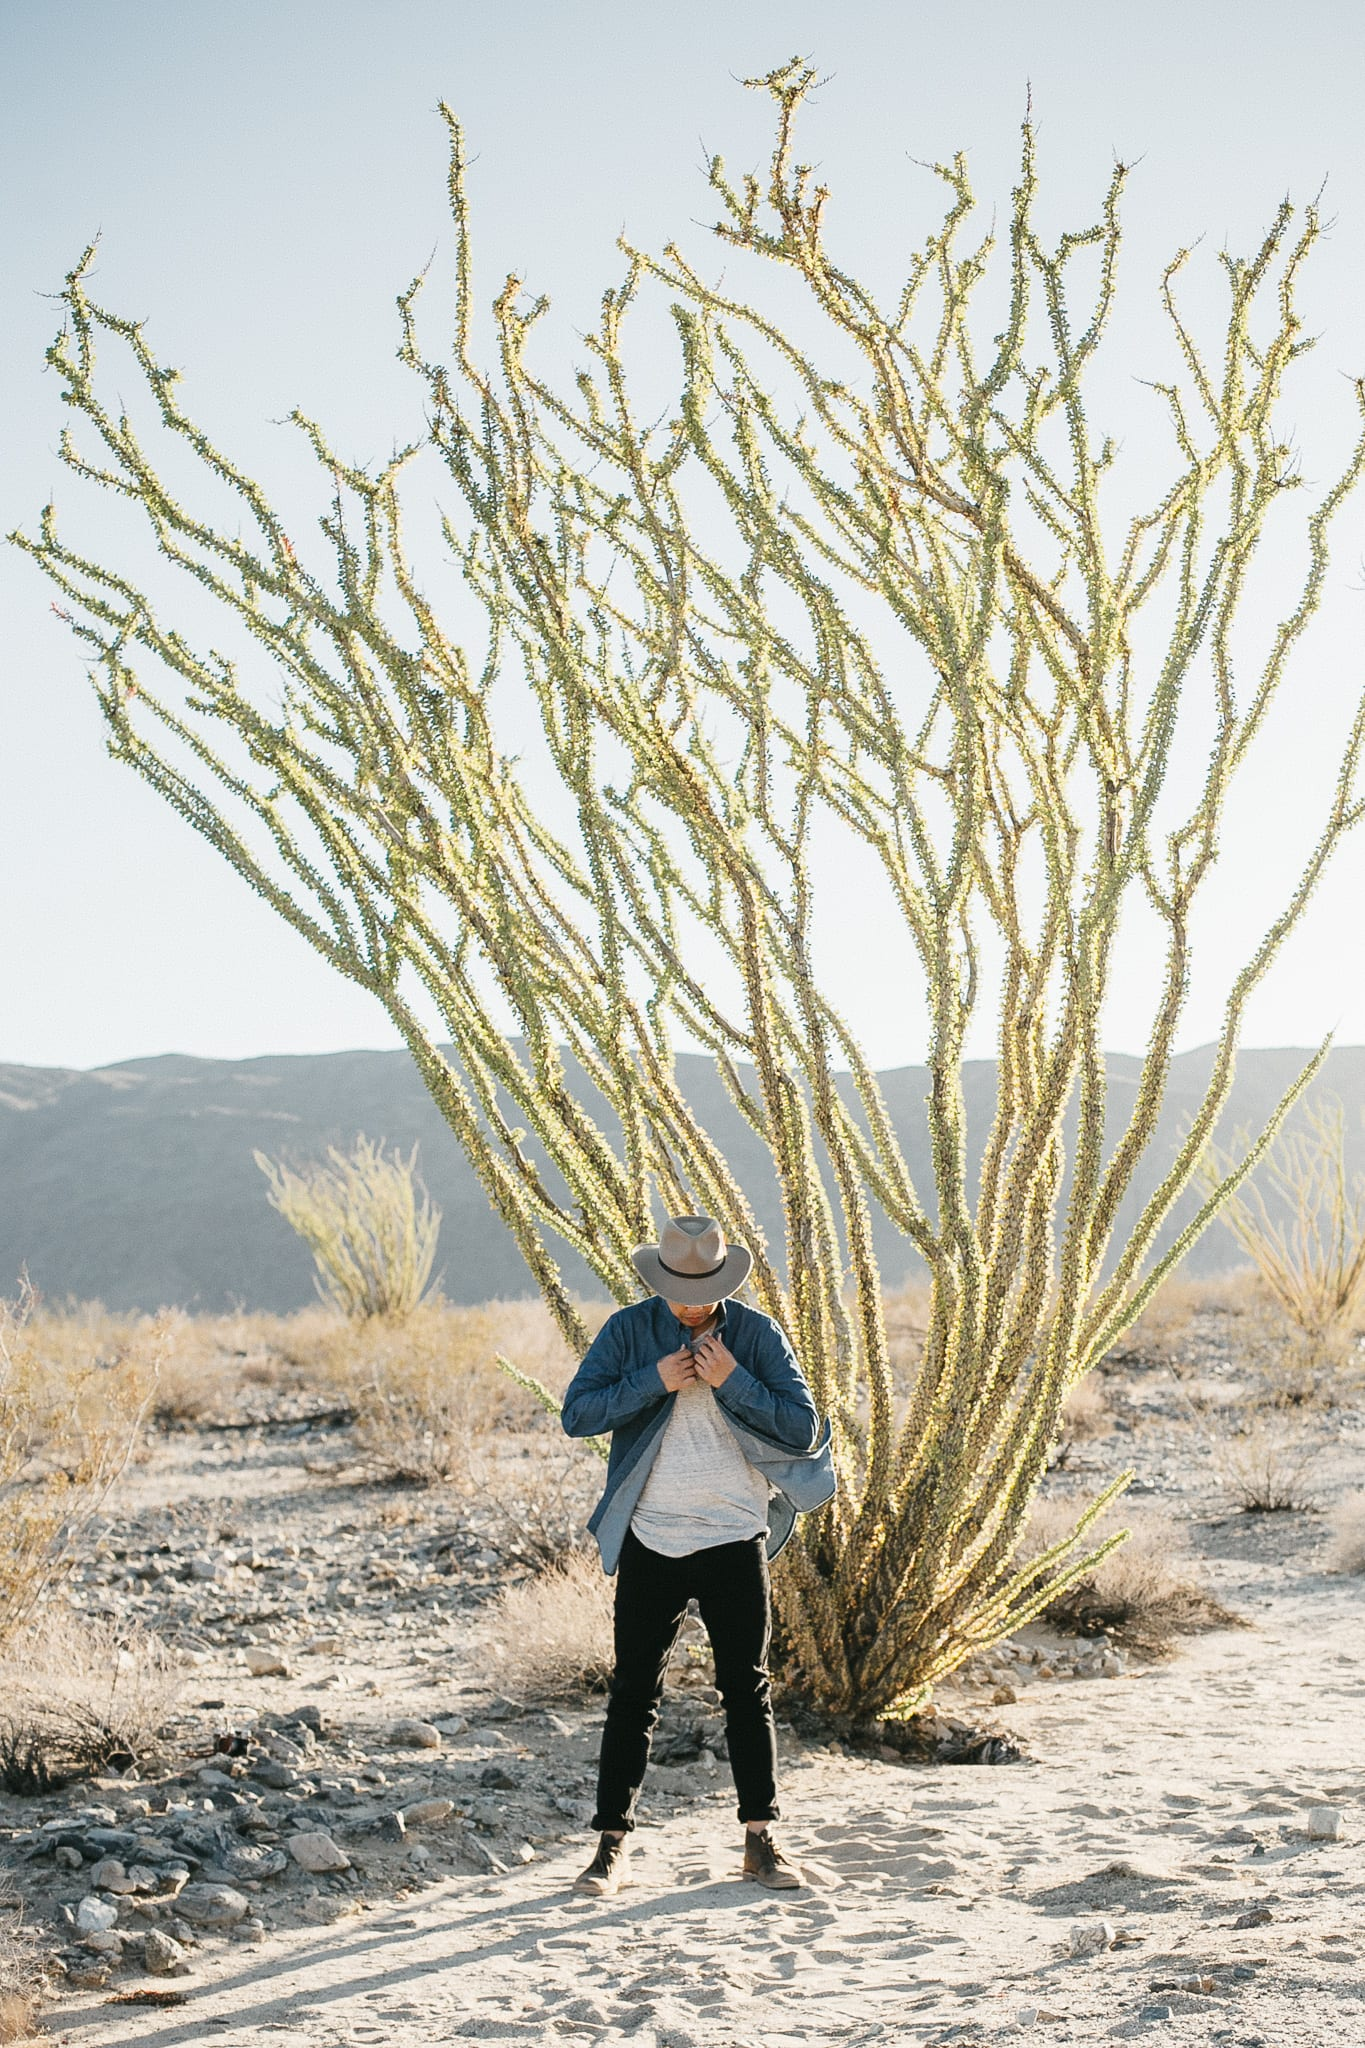 jc3-joshua-tree-california-lifestyle-portrait-photographer-9